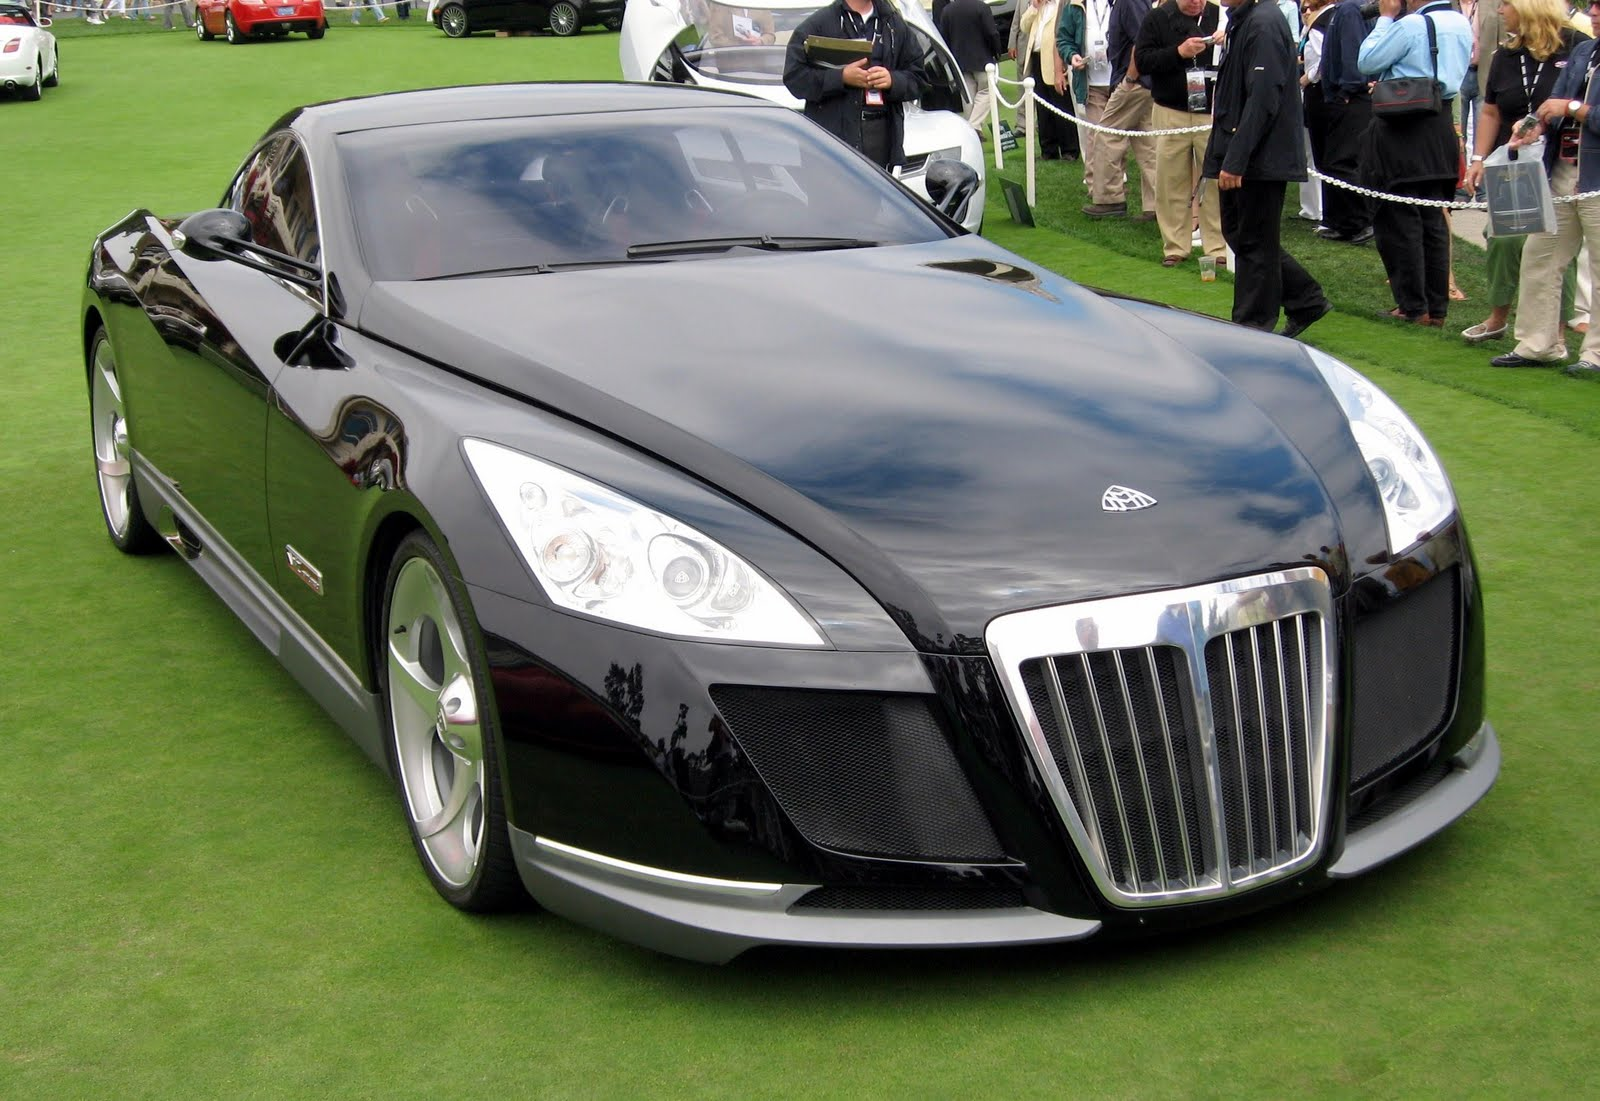 Most Expensive Luxury Cars - Luxury Cars